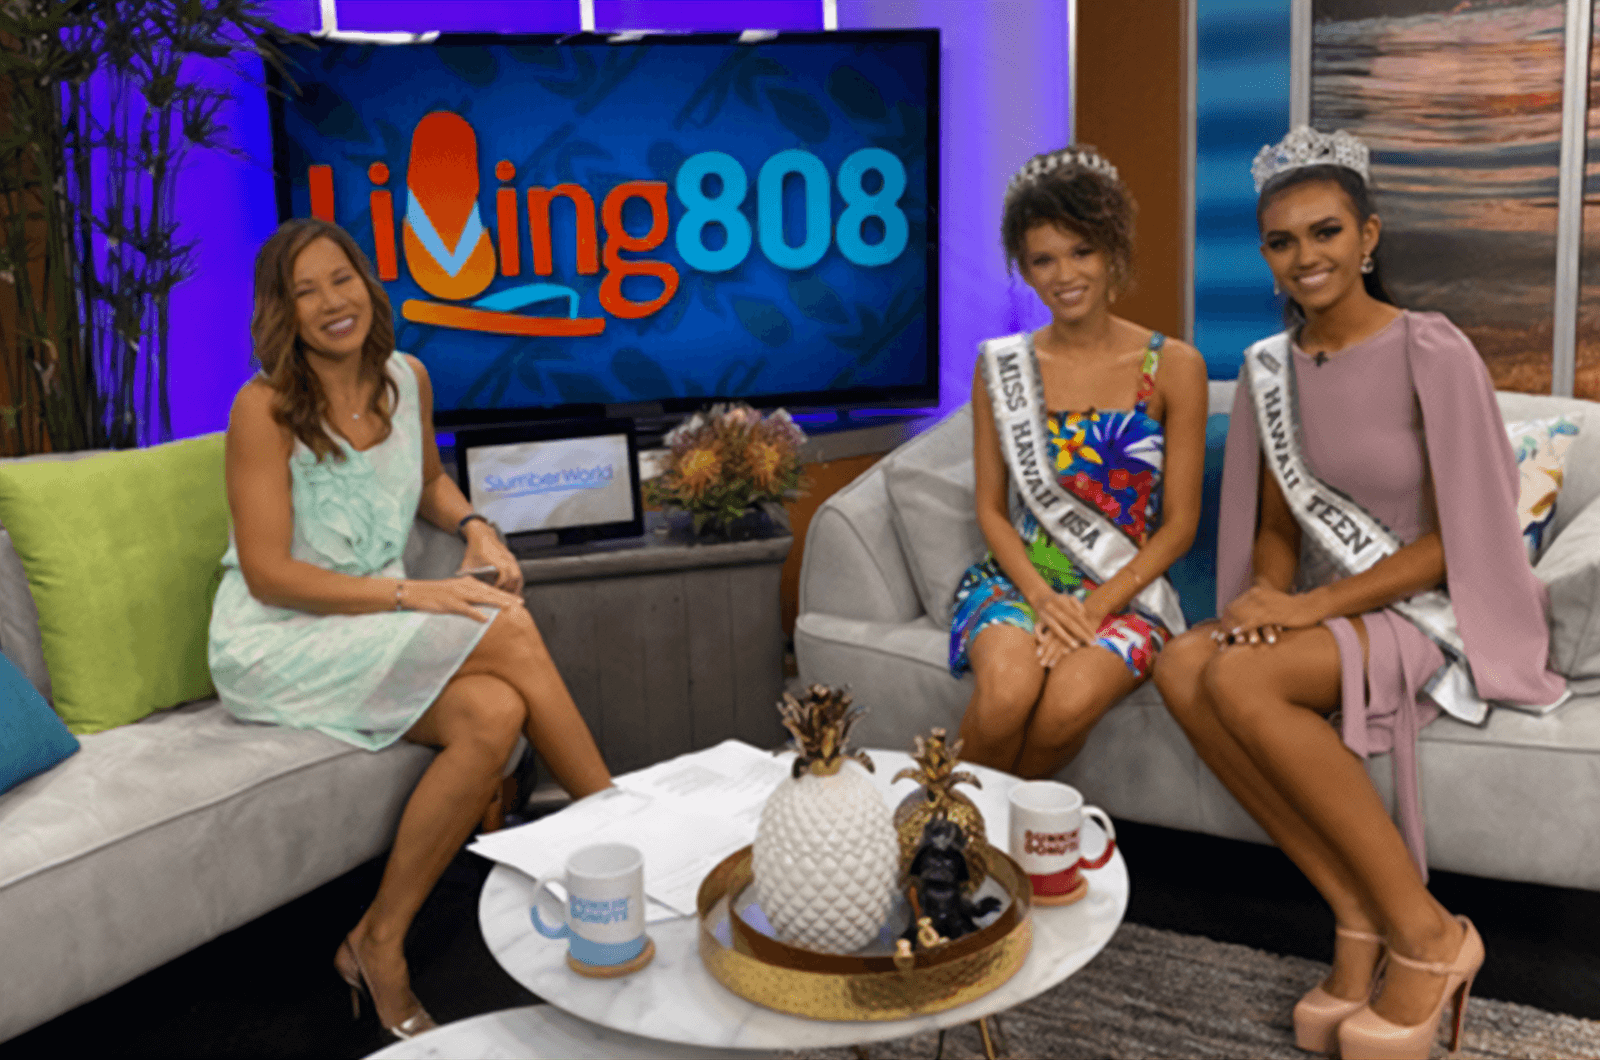 Neyland poses next to Miss Hawaii Teen USA Kiʻilani Arruda (right) during a TV interview with Living 808. Photo Credit: BK Photo